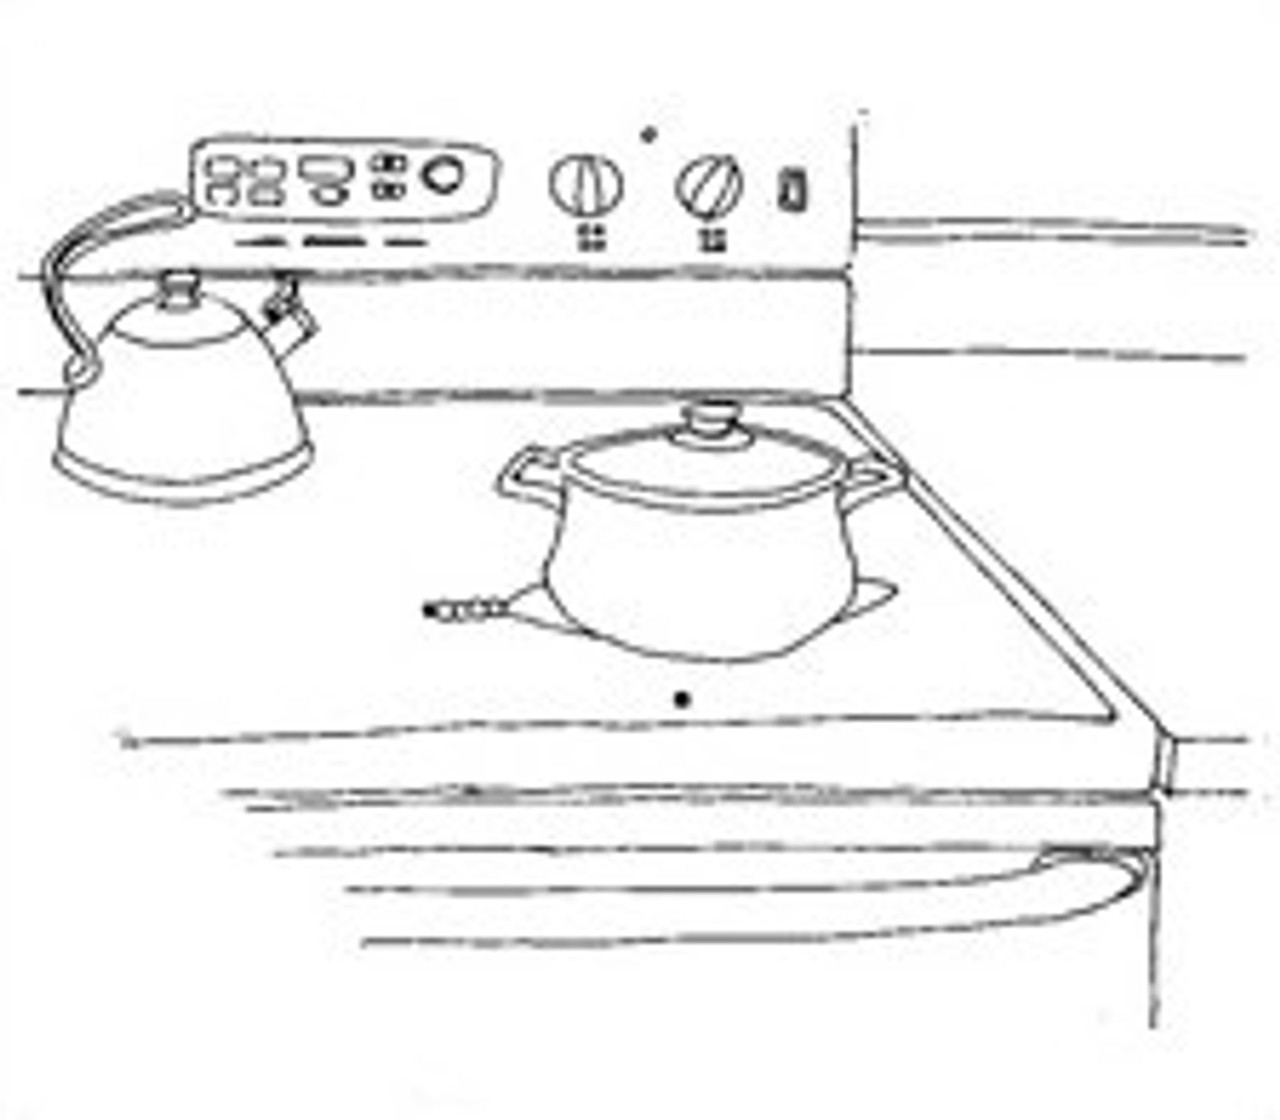 Cooking Wand - Boiling Pot Overflow preventor